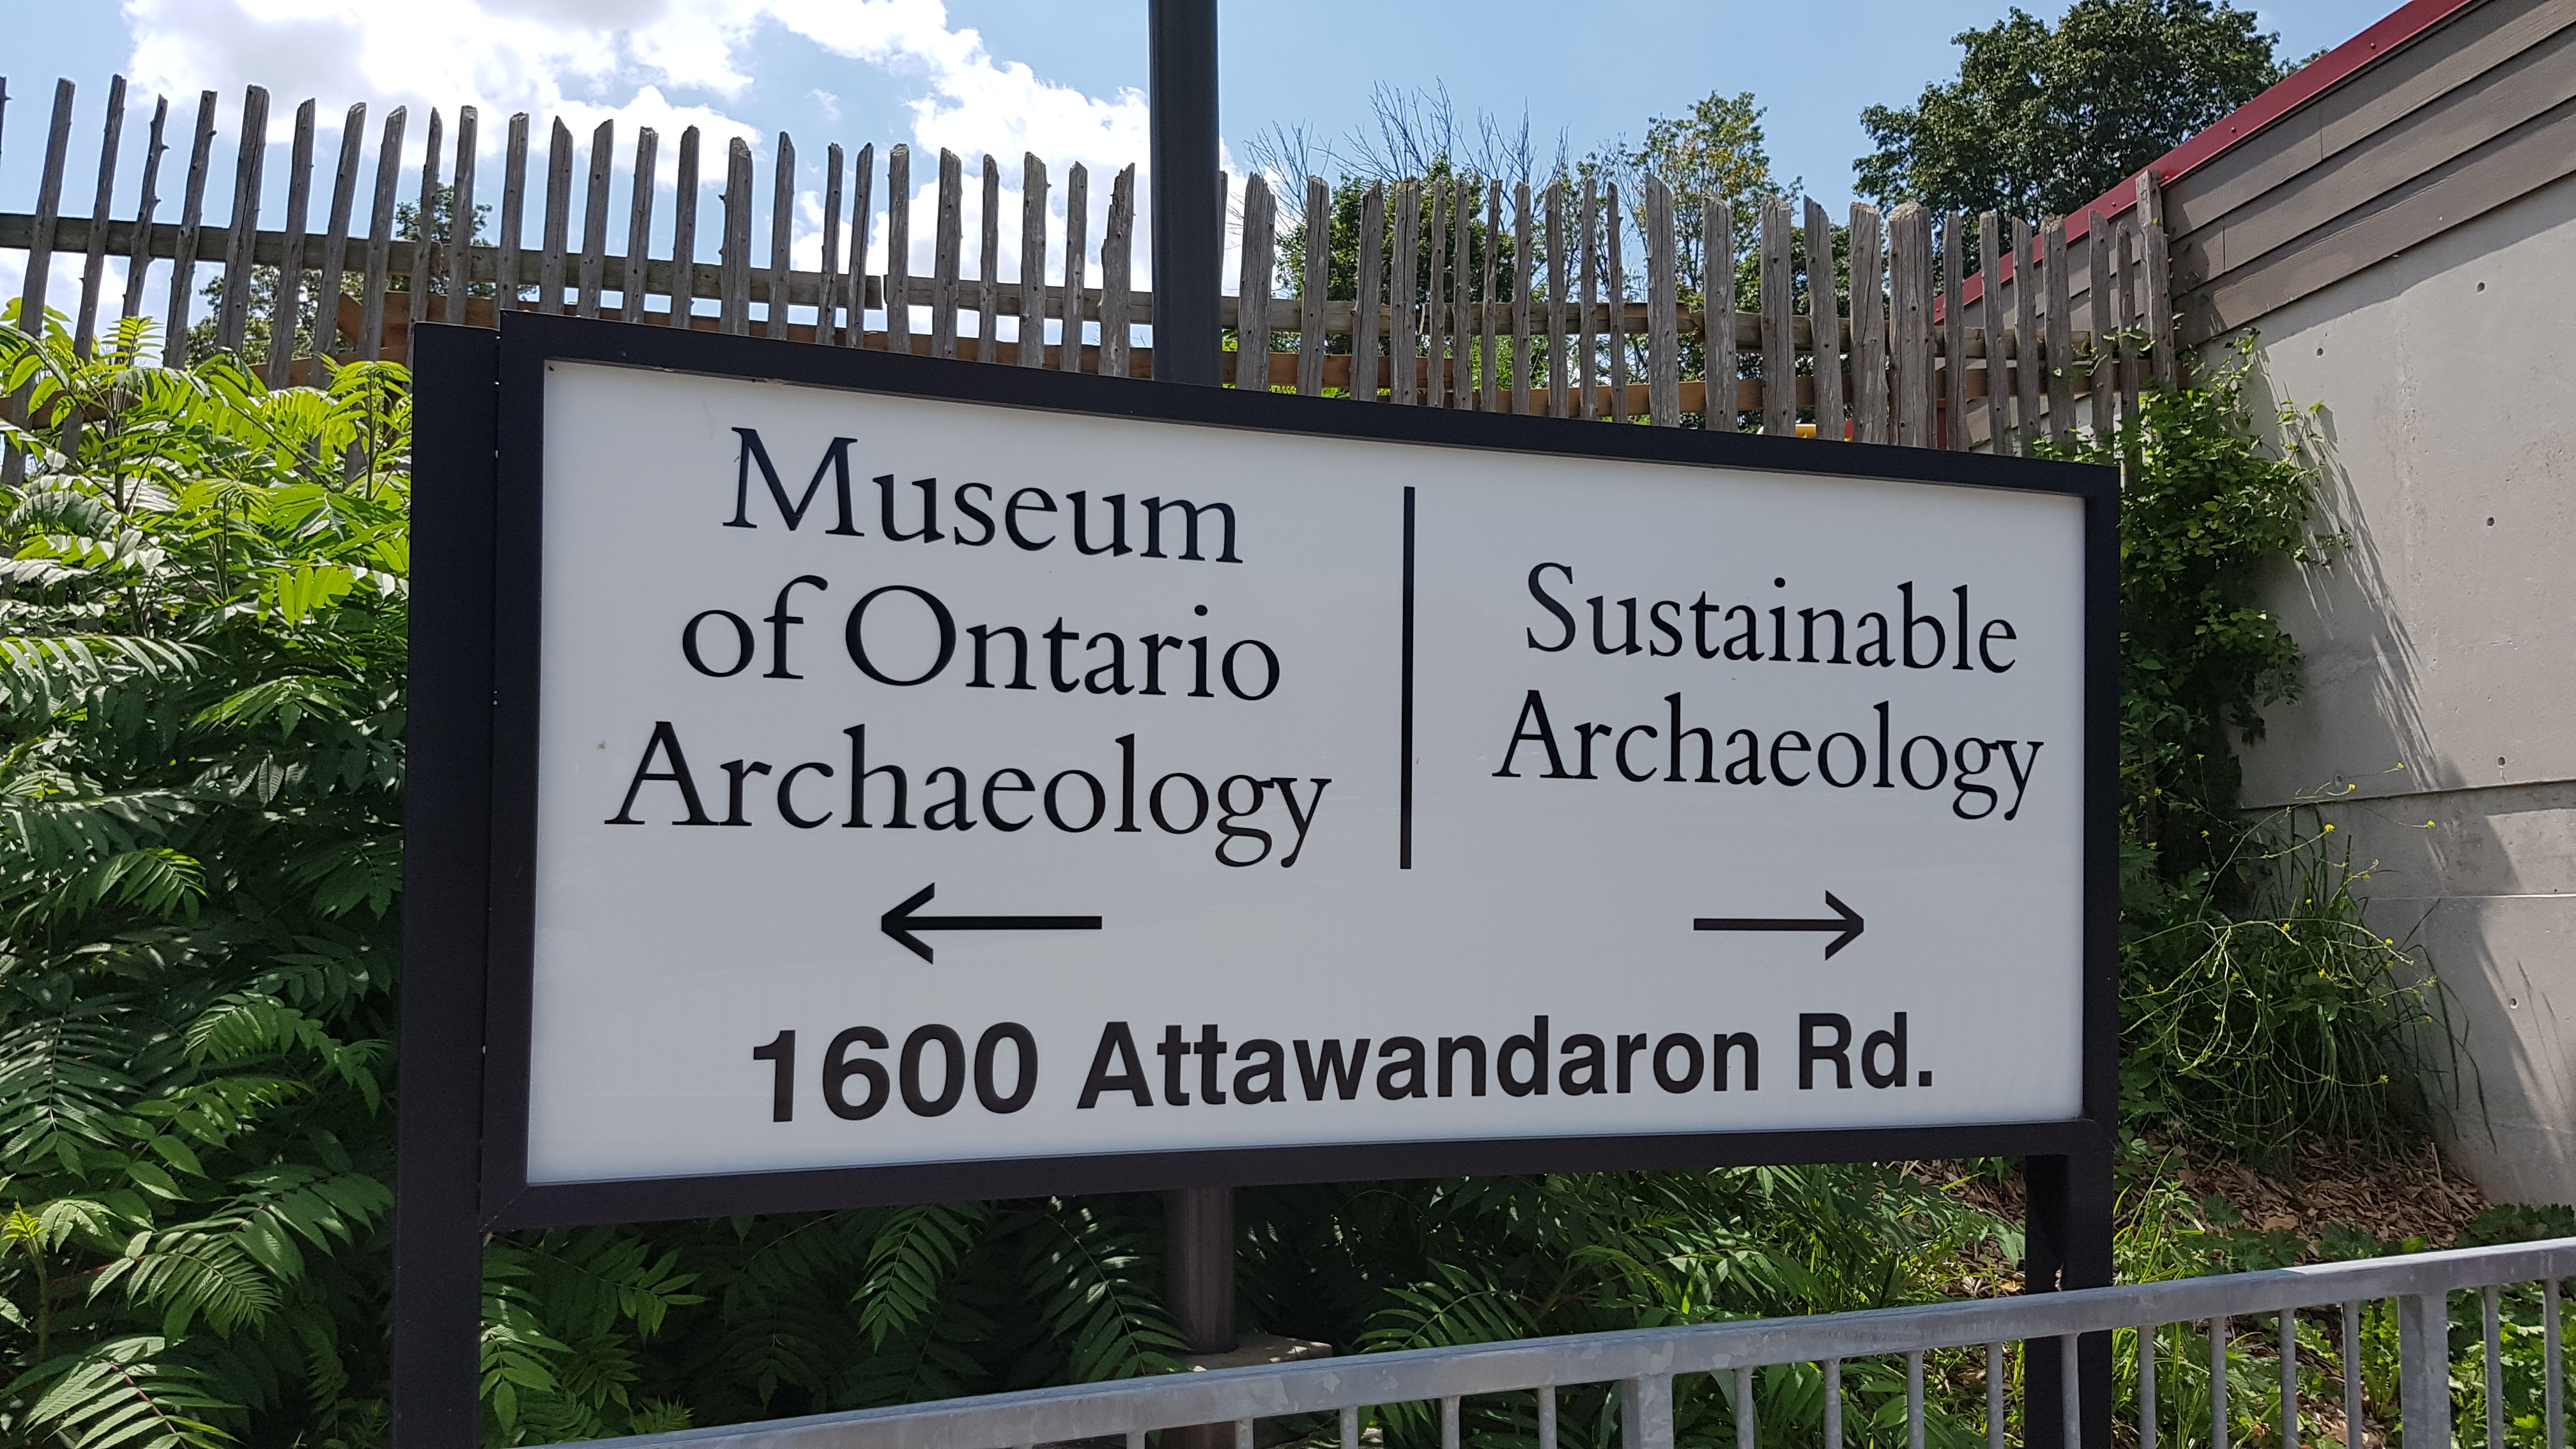 Museum signs